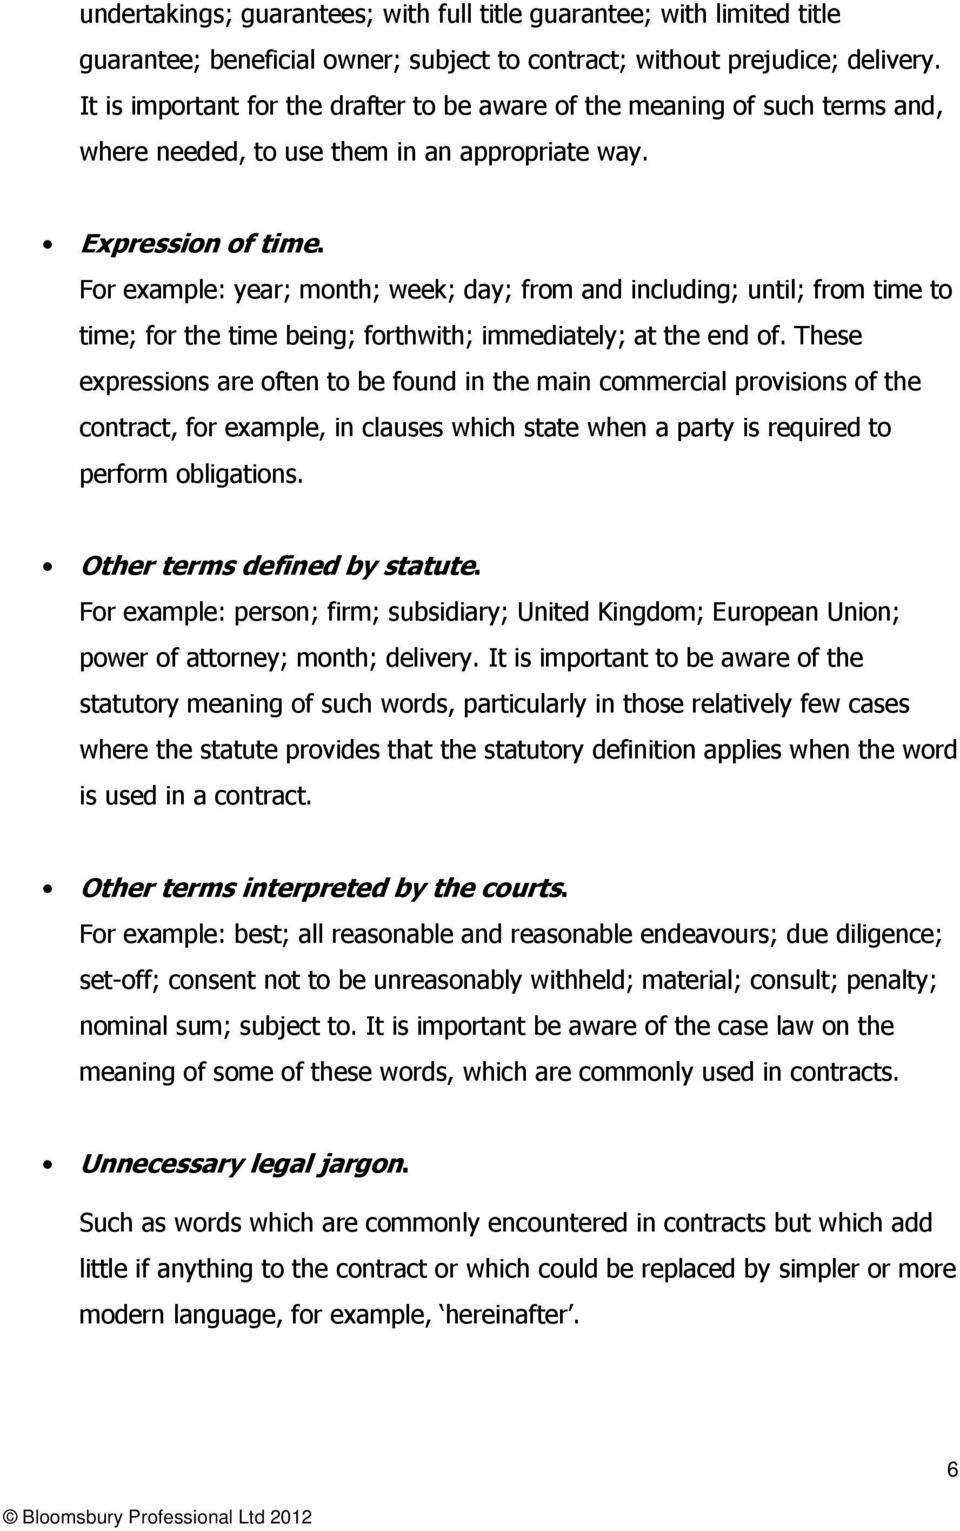 set off legal meaning